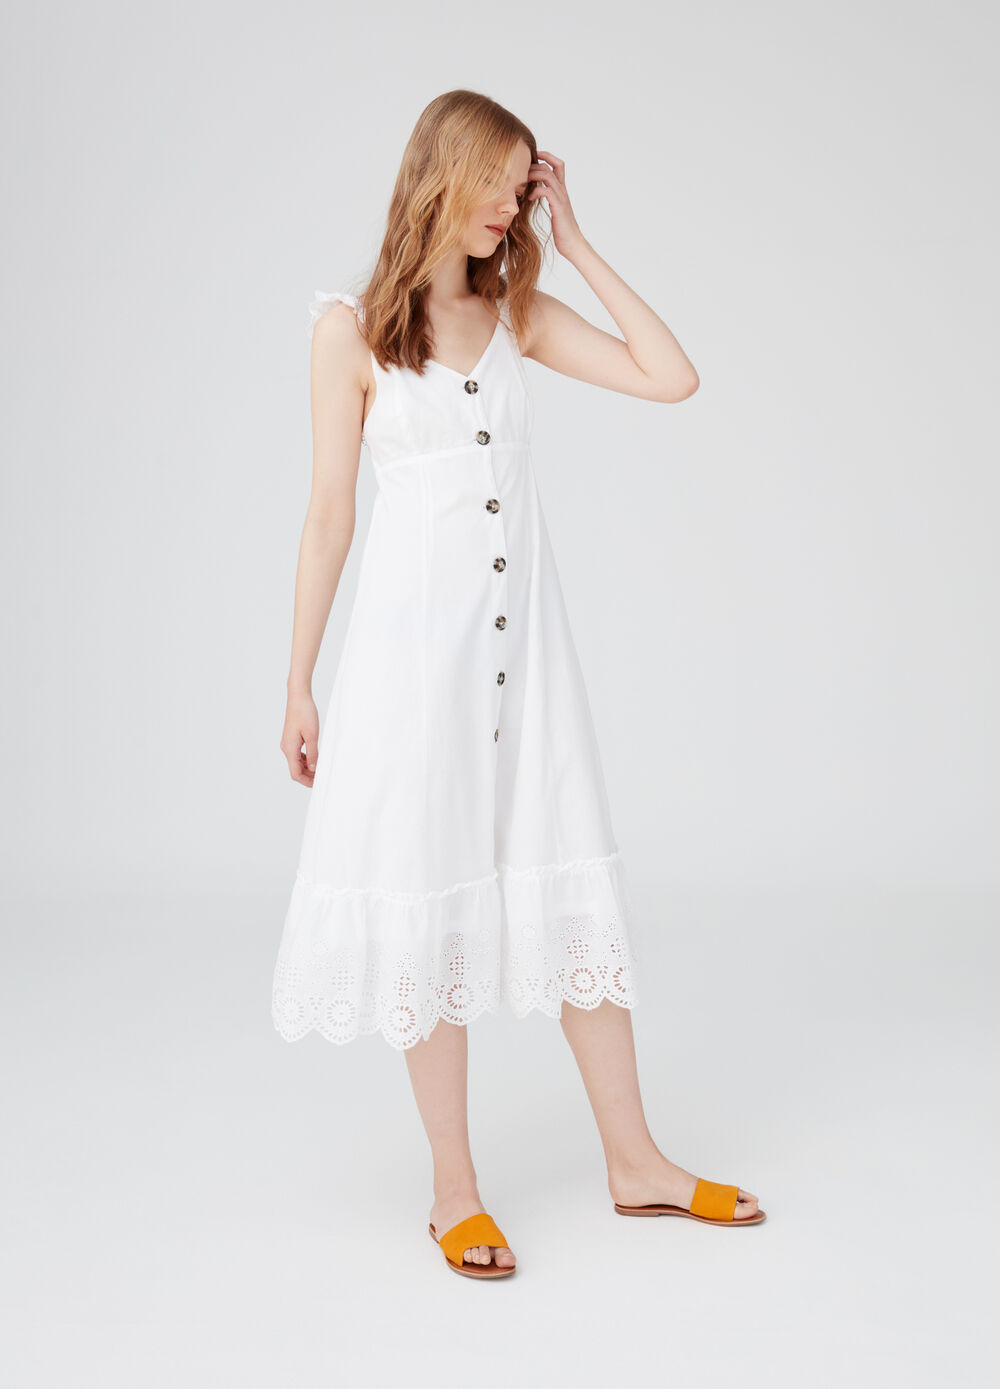 Long dress with spaghetti straps, ruches and lace